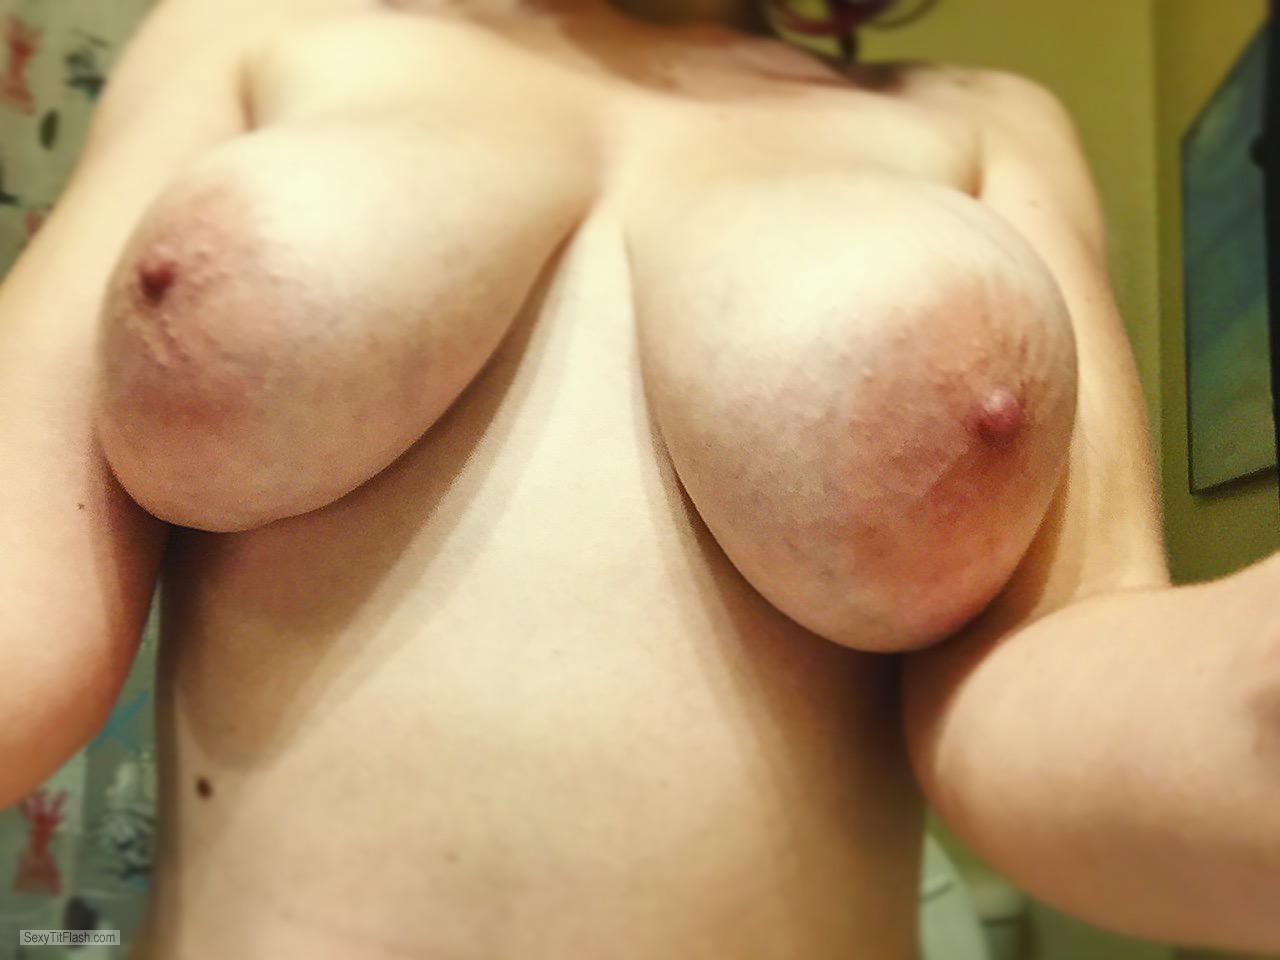 Tit Flash: My Very Big Tits - Holly from United Kingdom